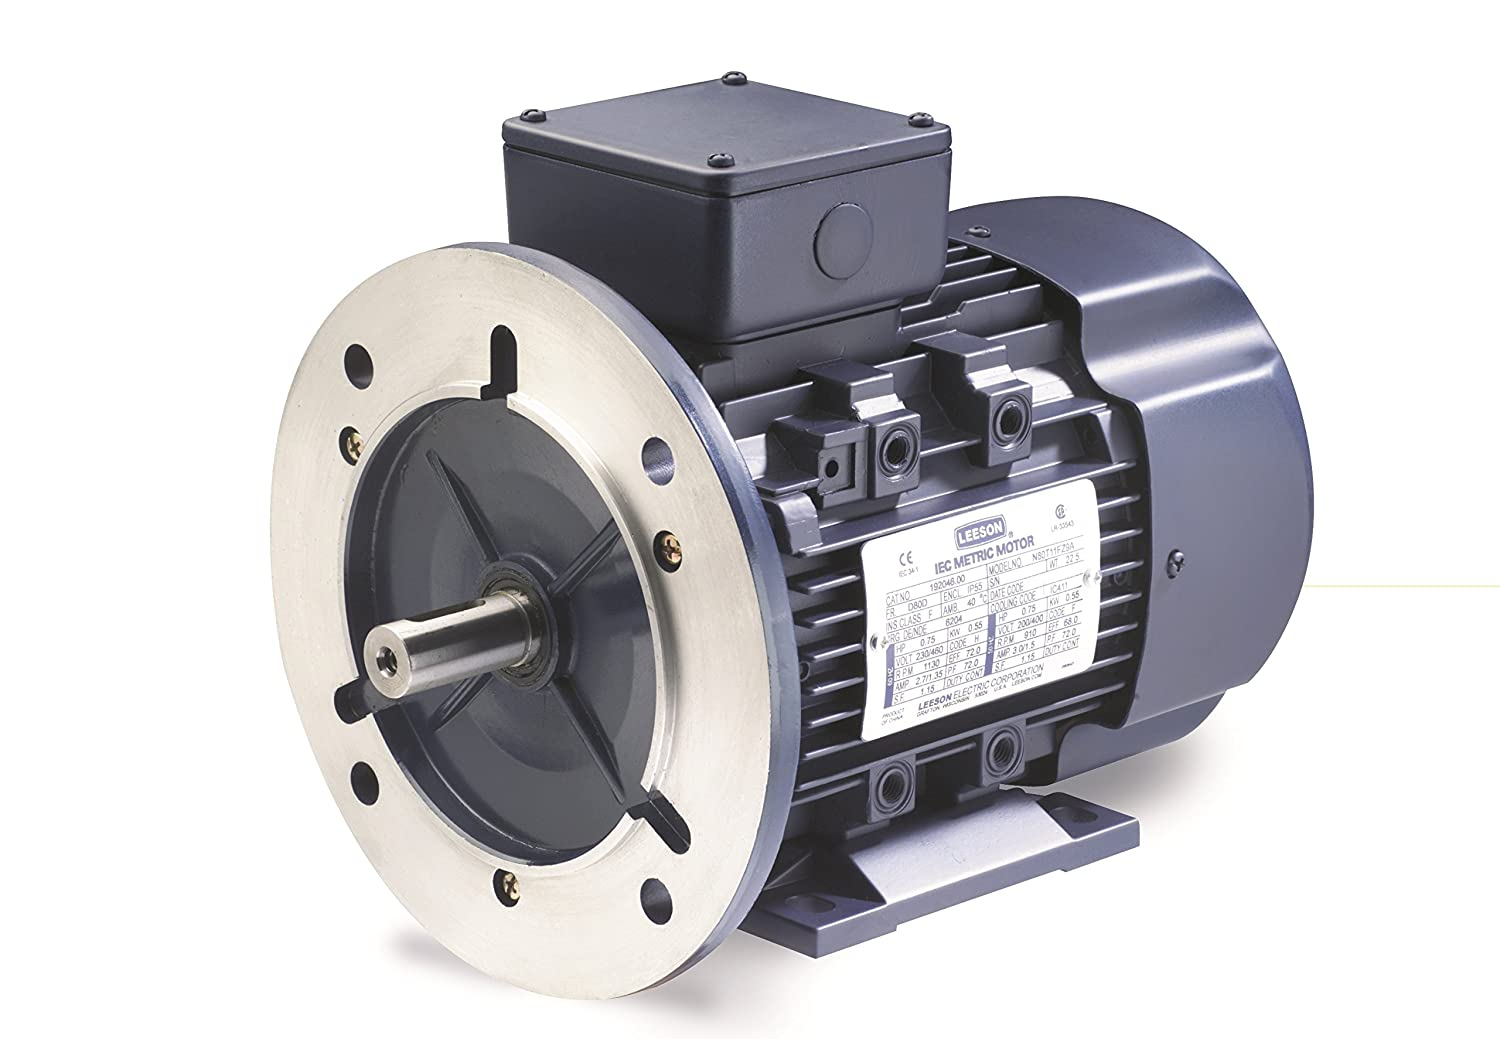 1HP Rigid Mounting 230//460V Voltage 3 Phase D90S Frame 60//50Hz Fequency C90T11FZ14A Leeson 192201.00 Rigid Base IEC Metric Motor 1200 RPM